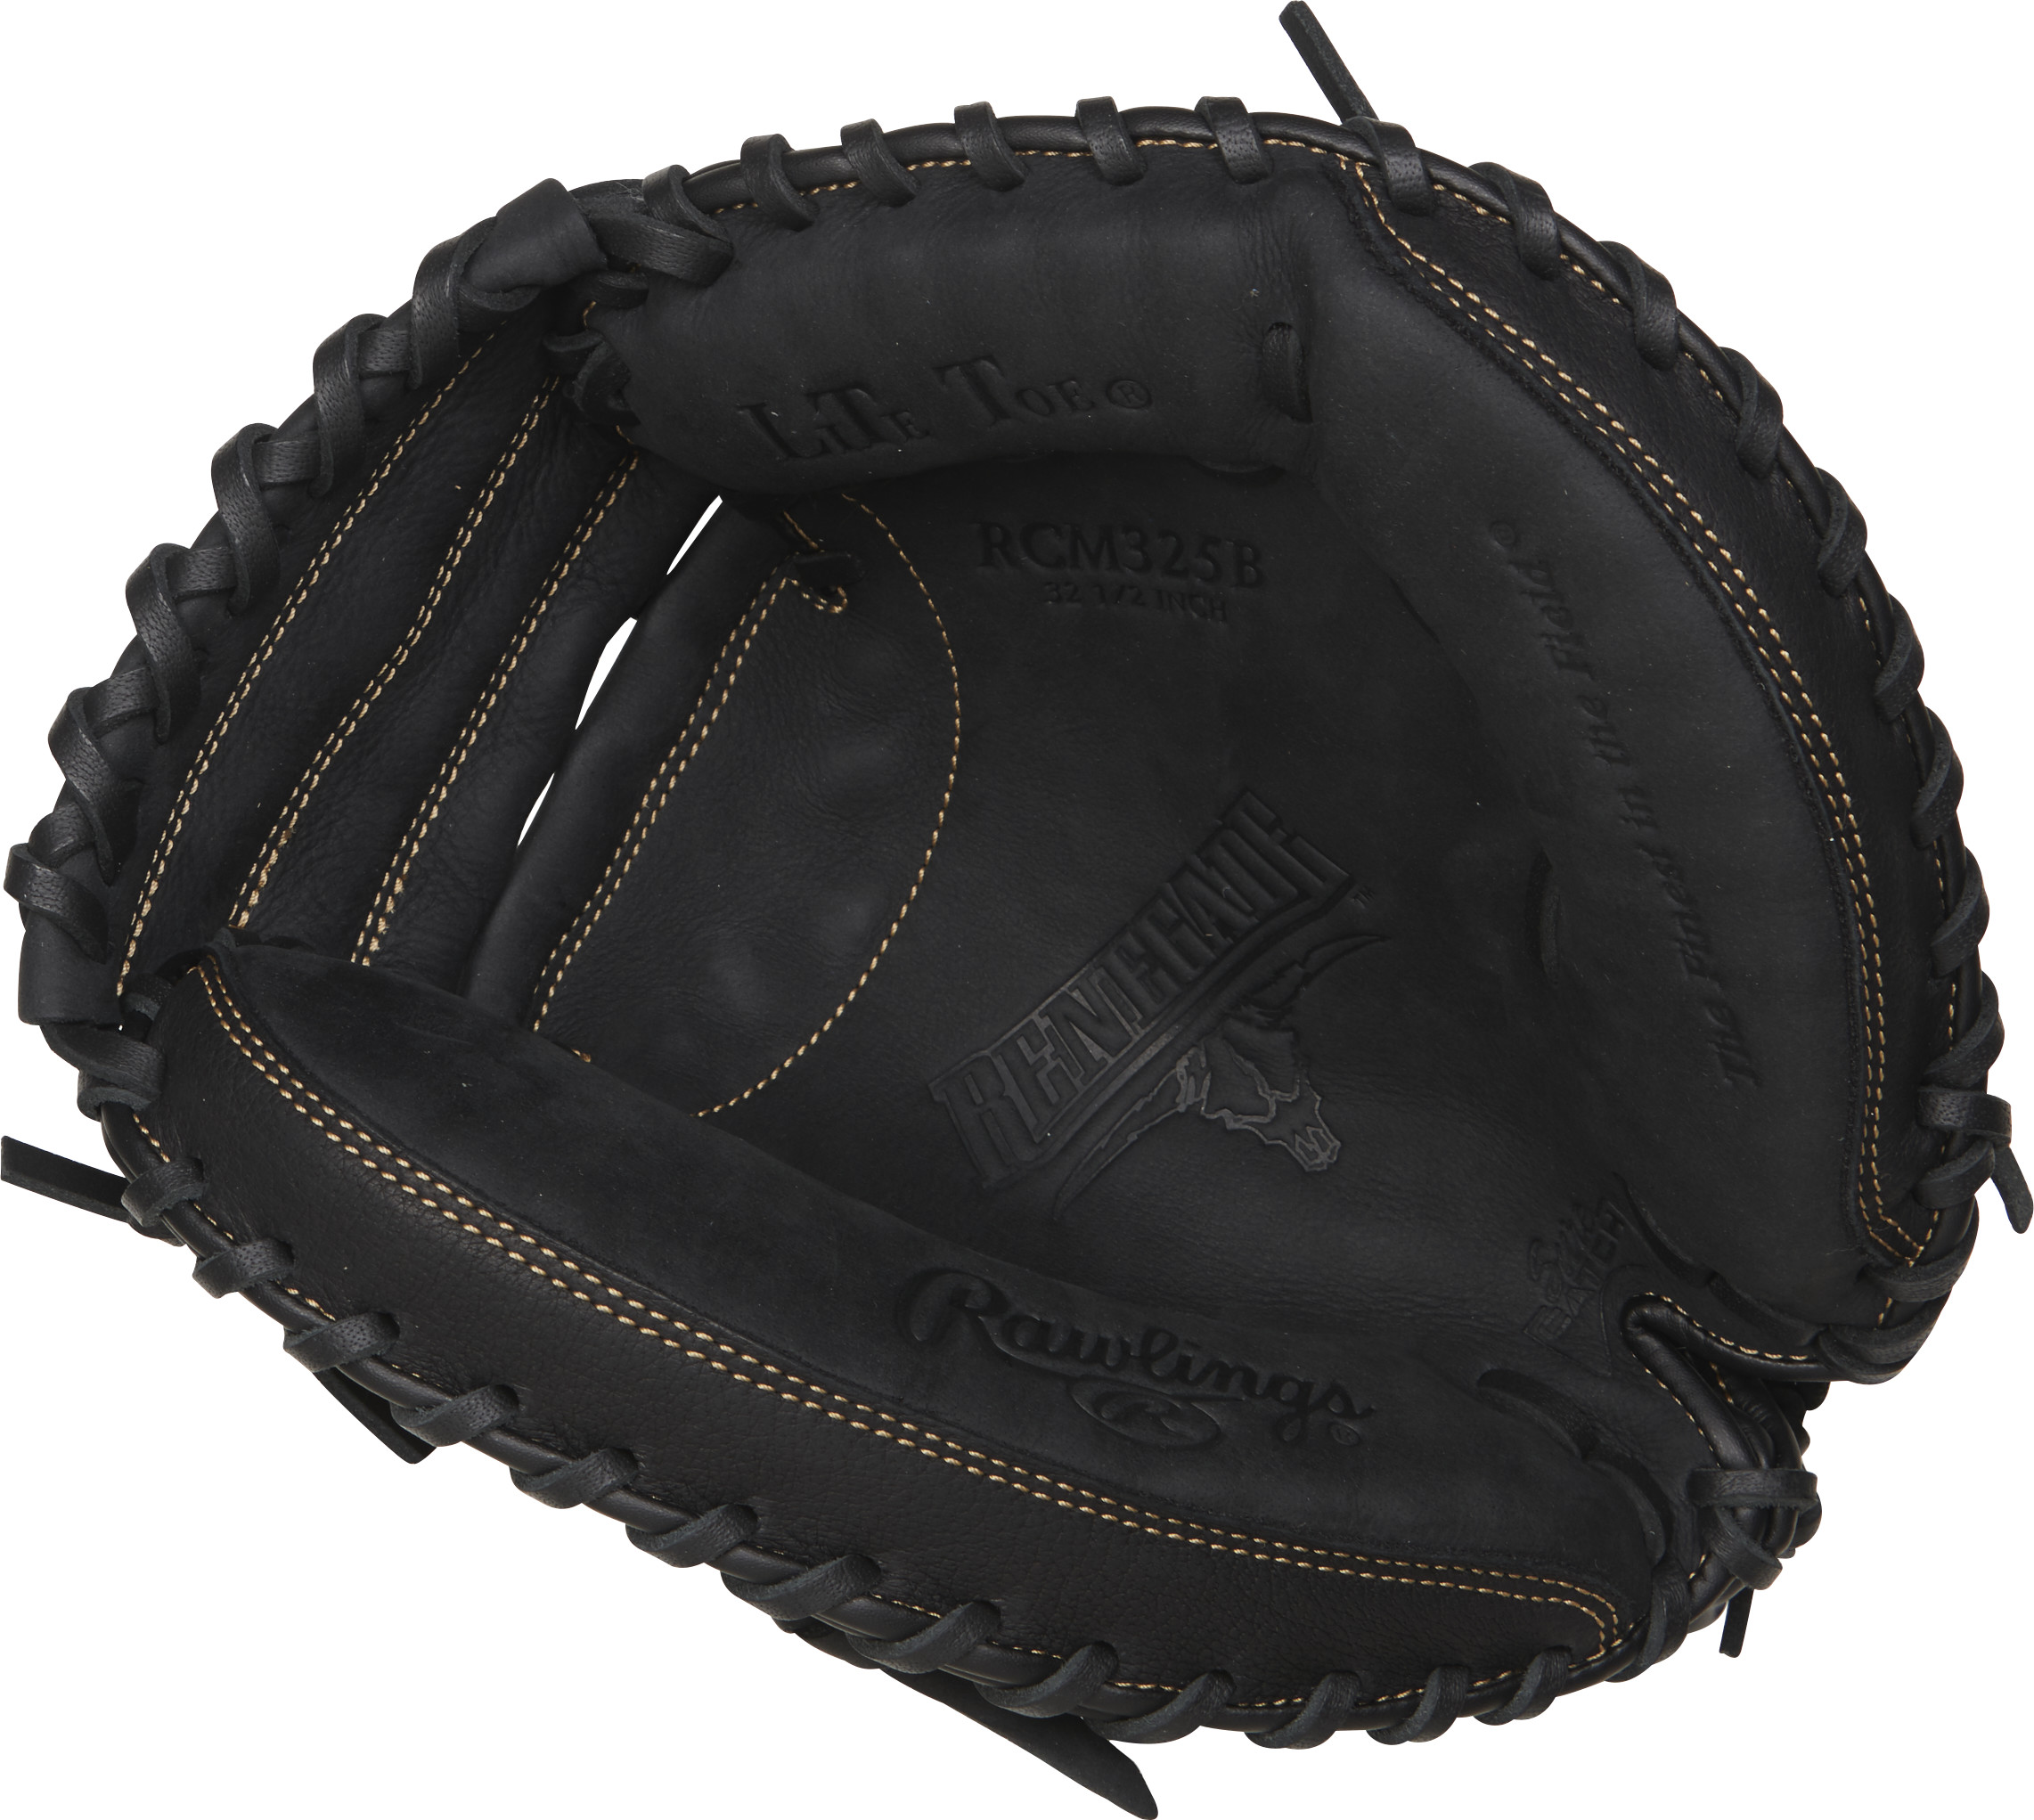 http://www.bestbatdeals.com/images/gloves/rawlings/RCM325B-1.jpg